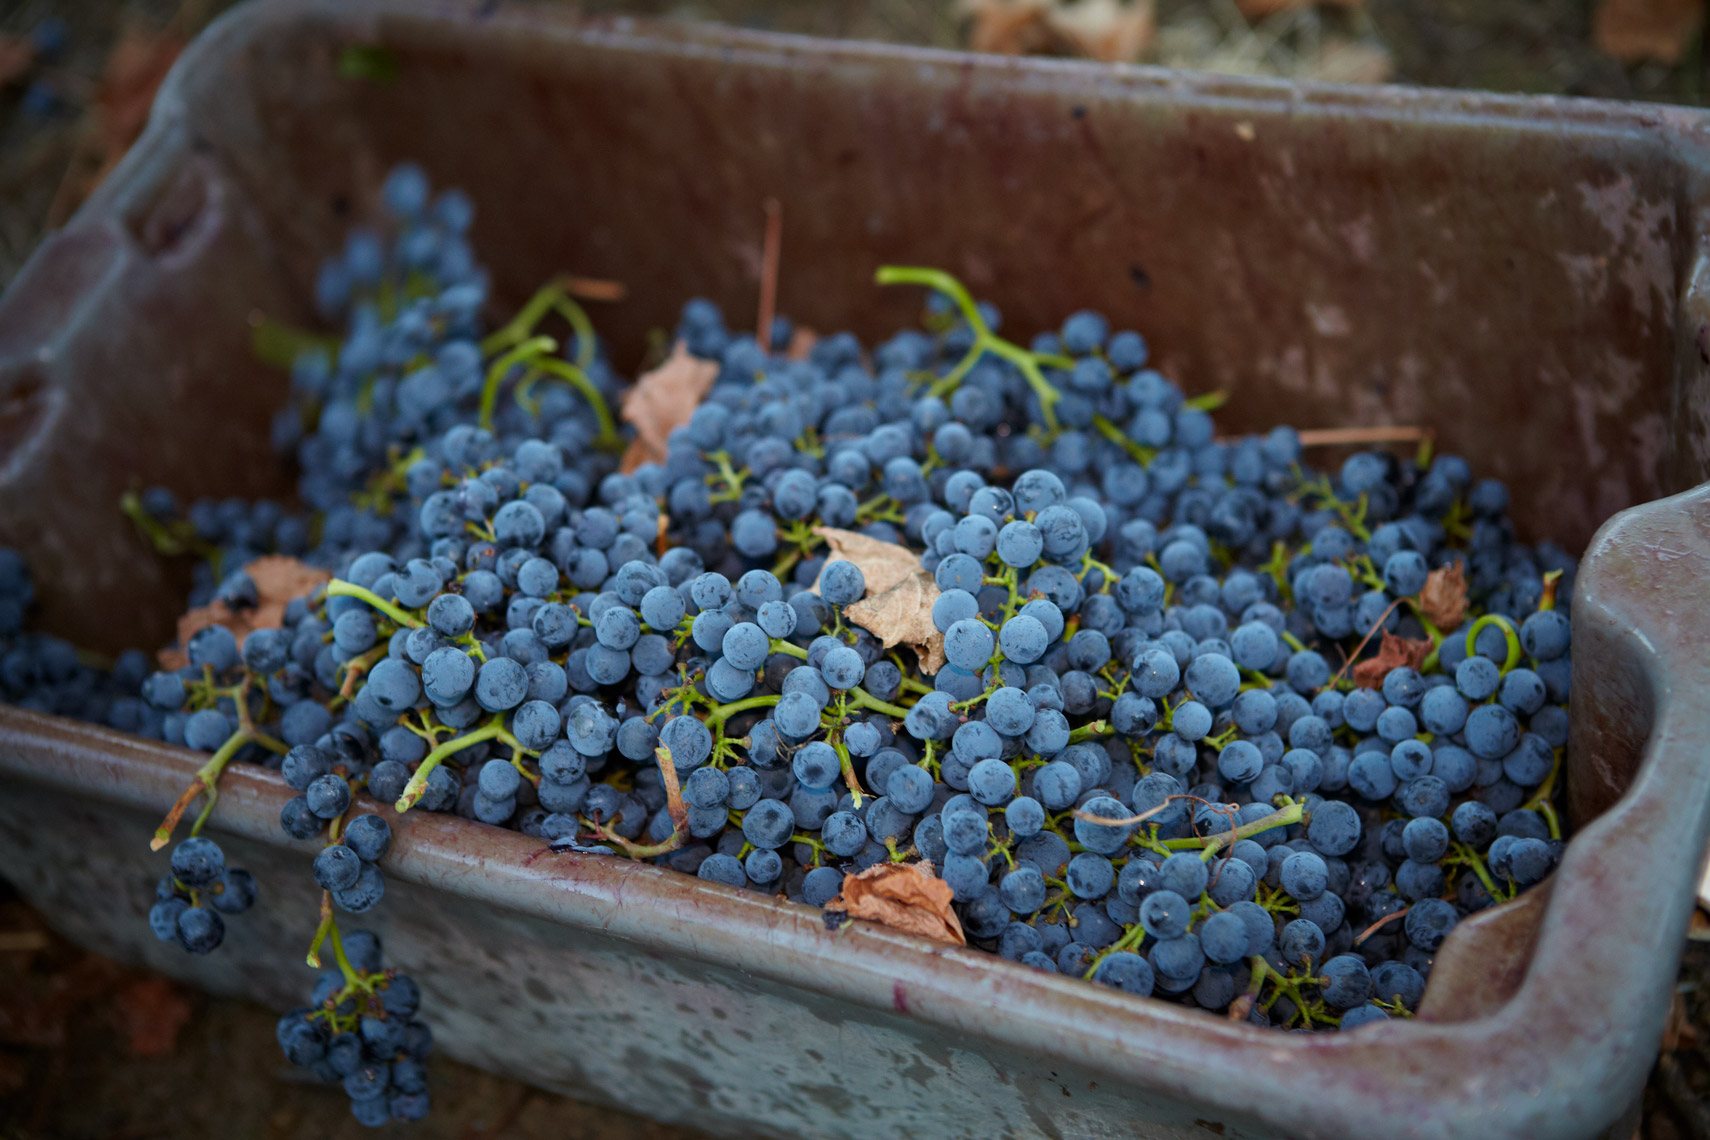 AlanCampbellPhotography, bin of grapes harvest time